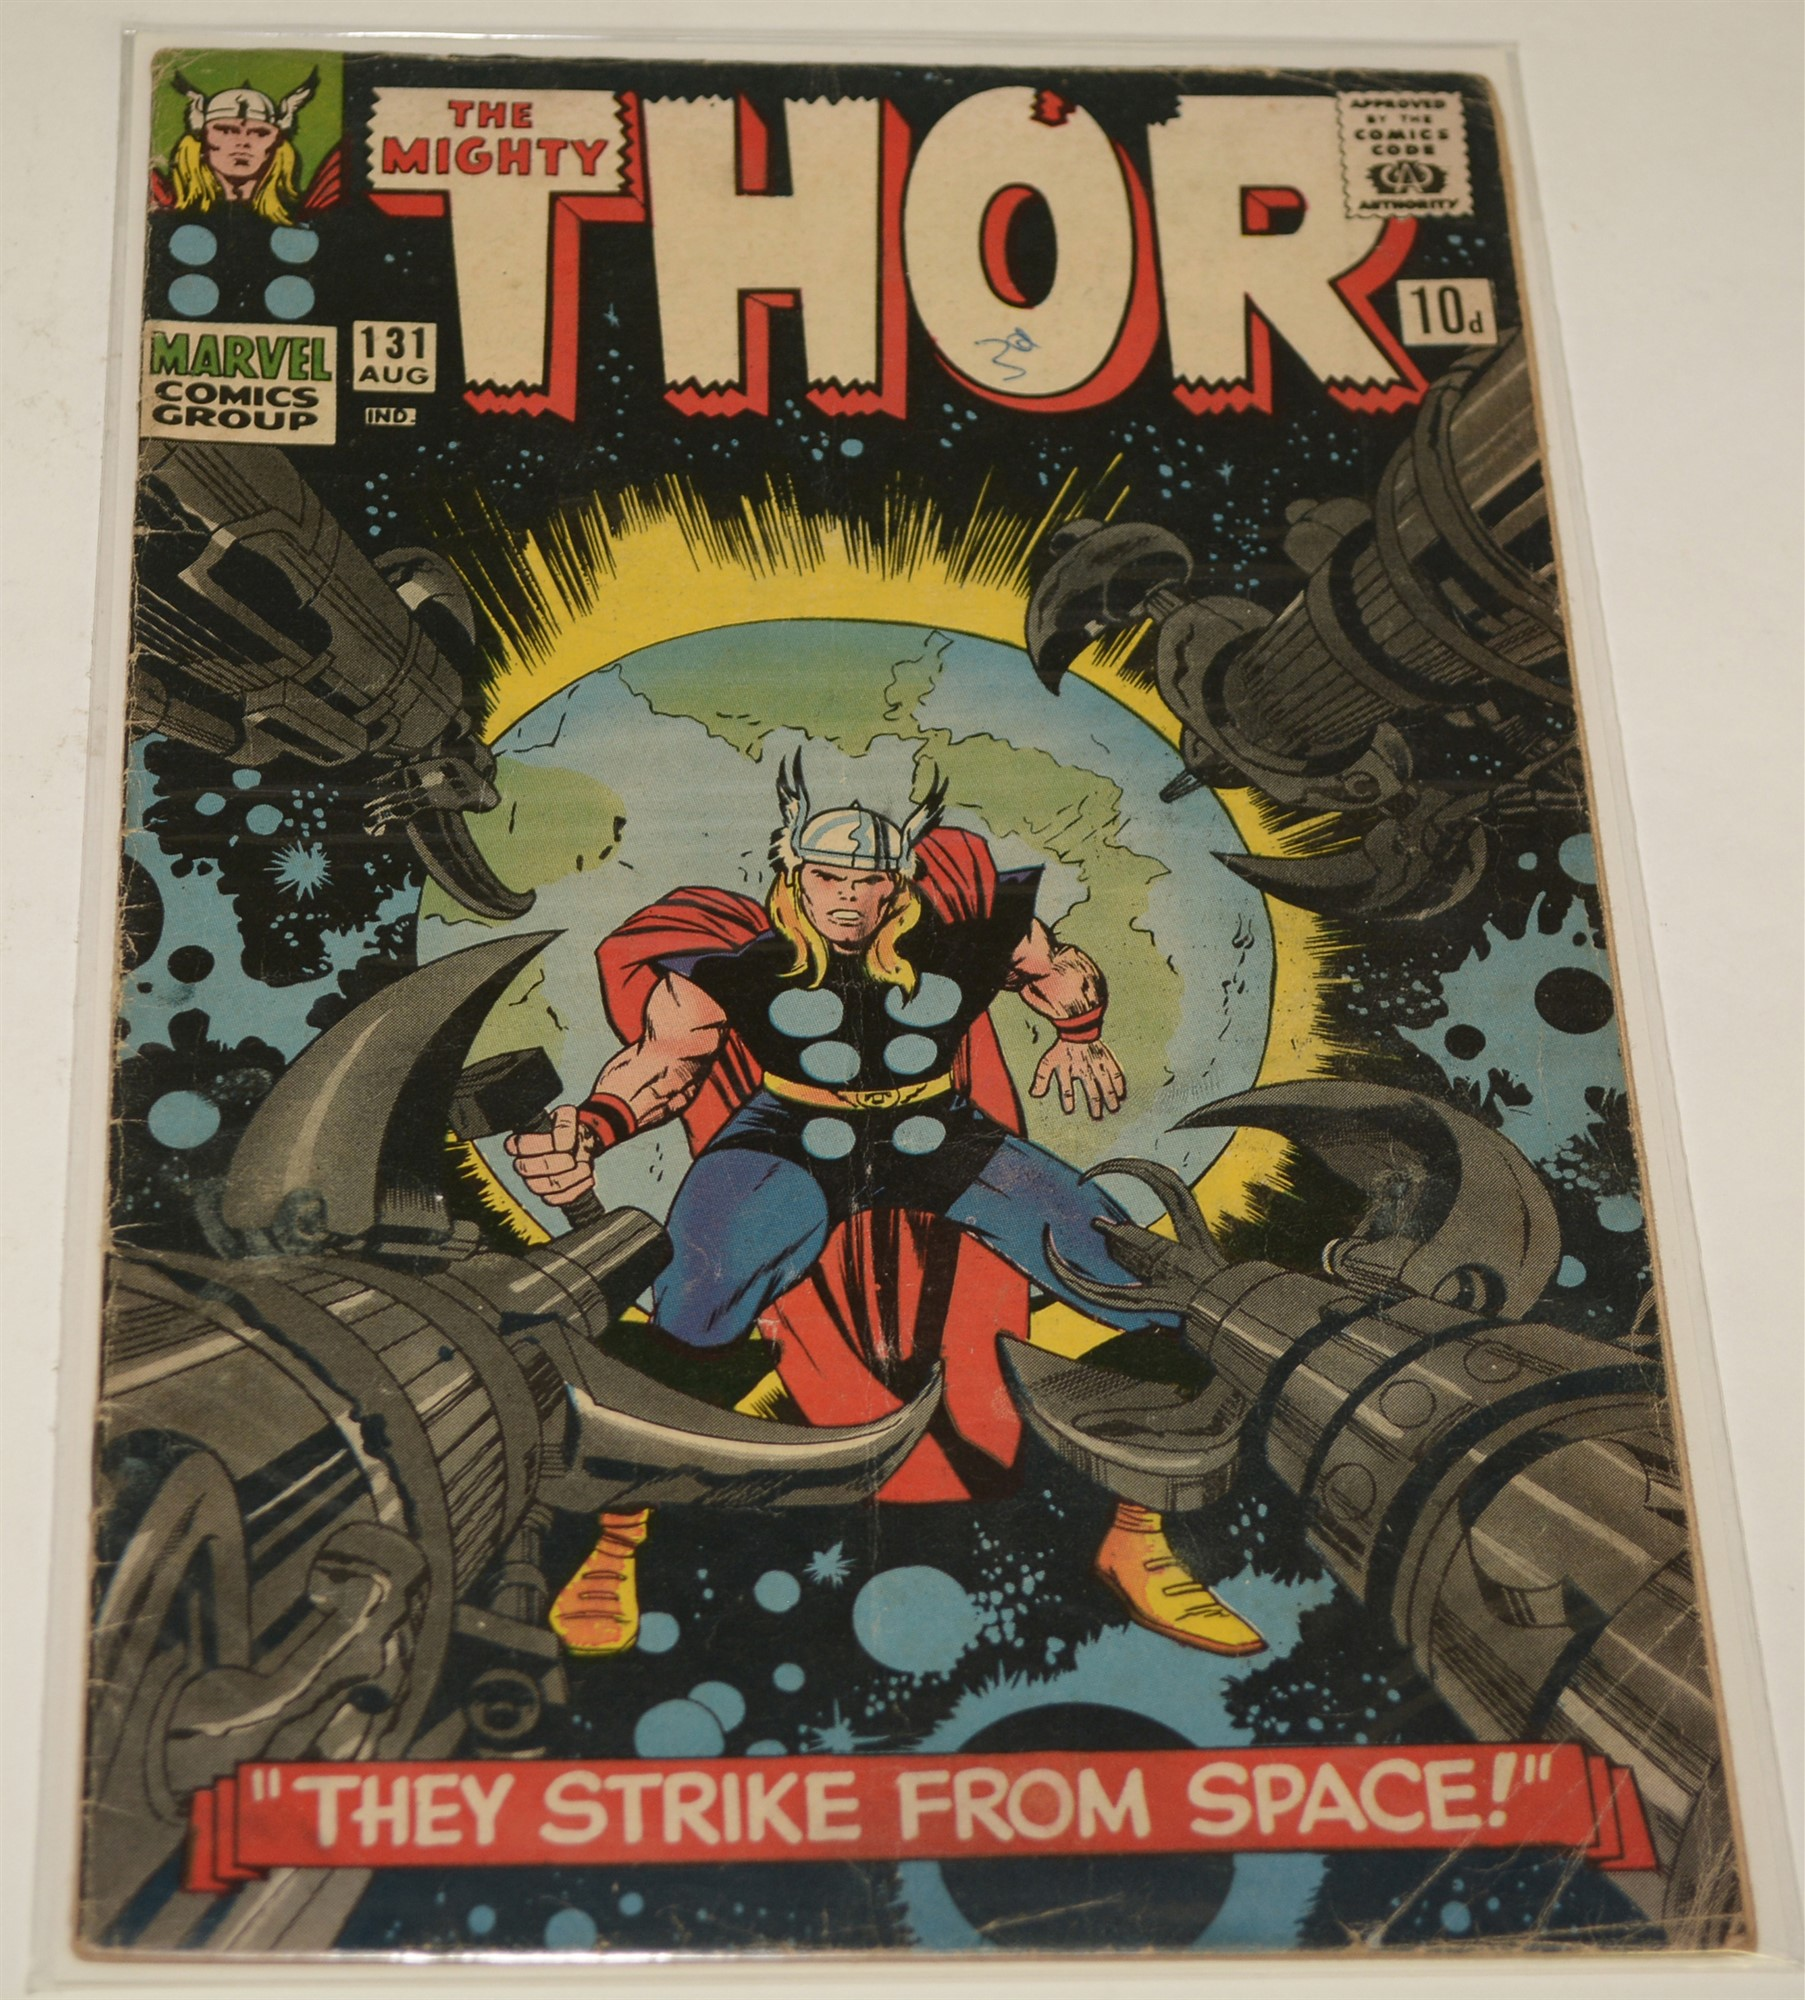 Journey into Mystery No. 99; and The Mighty Thor No. 131 - Image 2 of 2